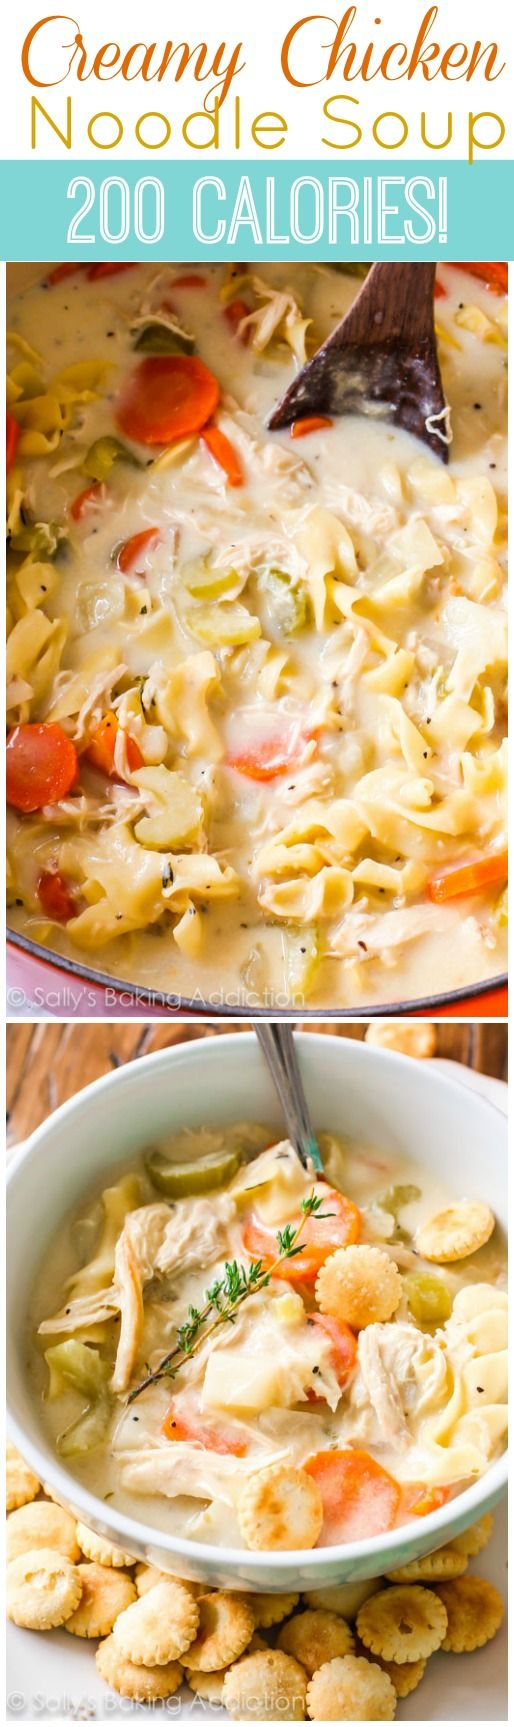 Lightened-Up Creamy Chicken Noodle Soup - my favorite! | sallysbakingaddiction.com | #soup #chickennoodle